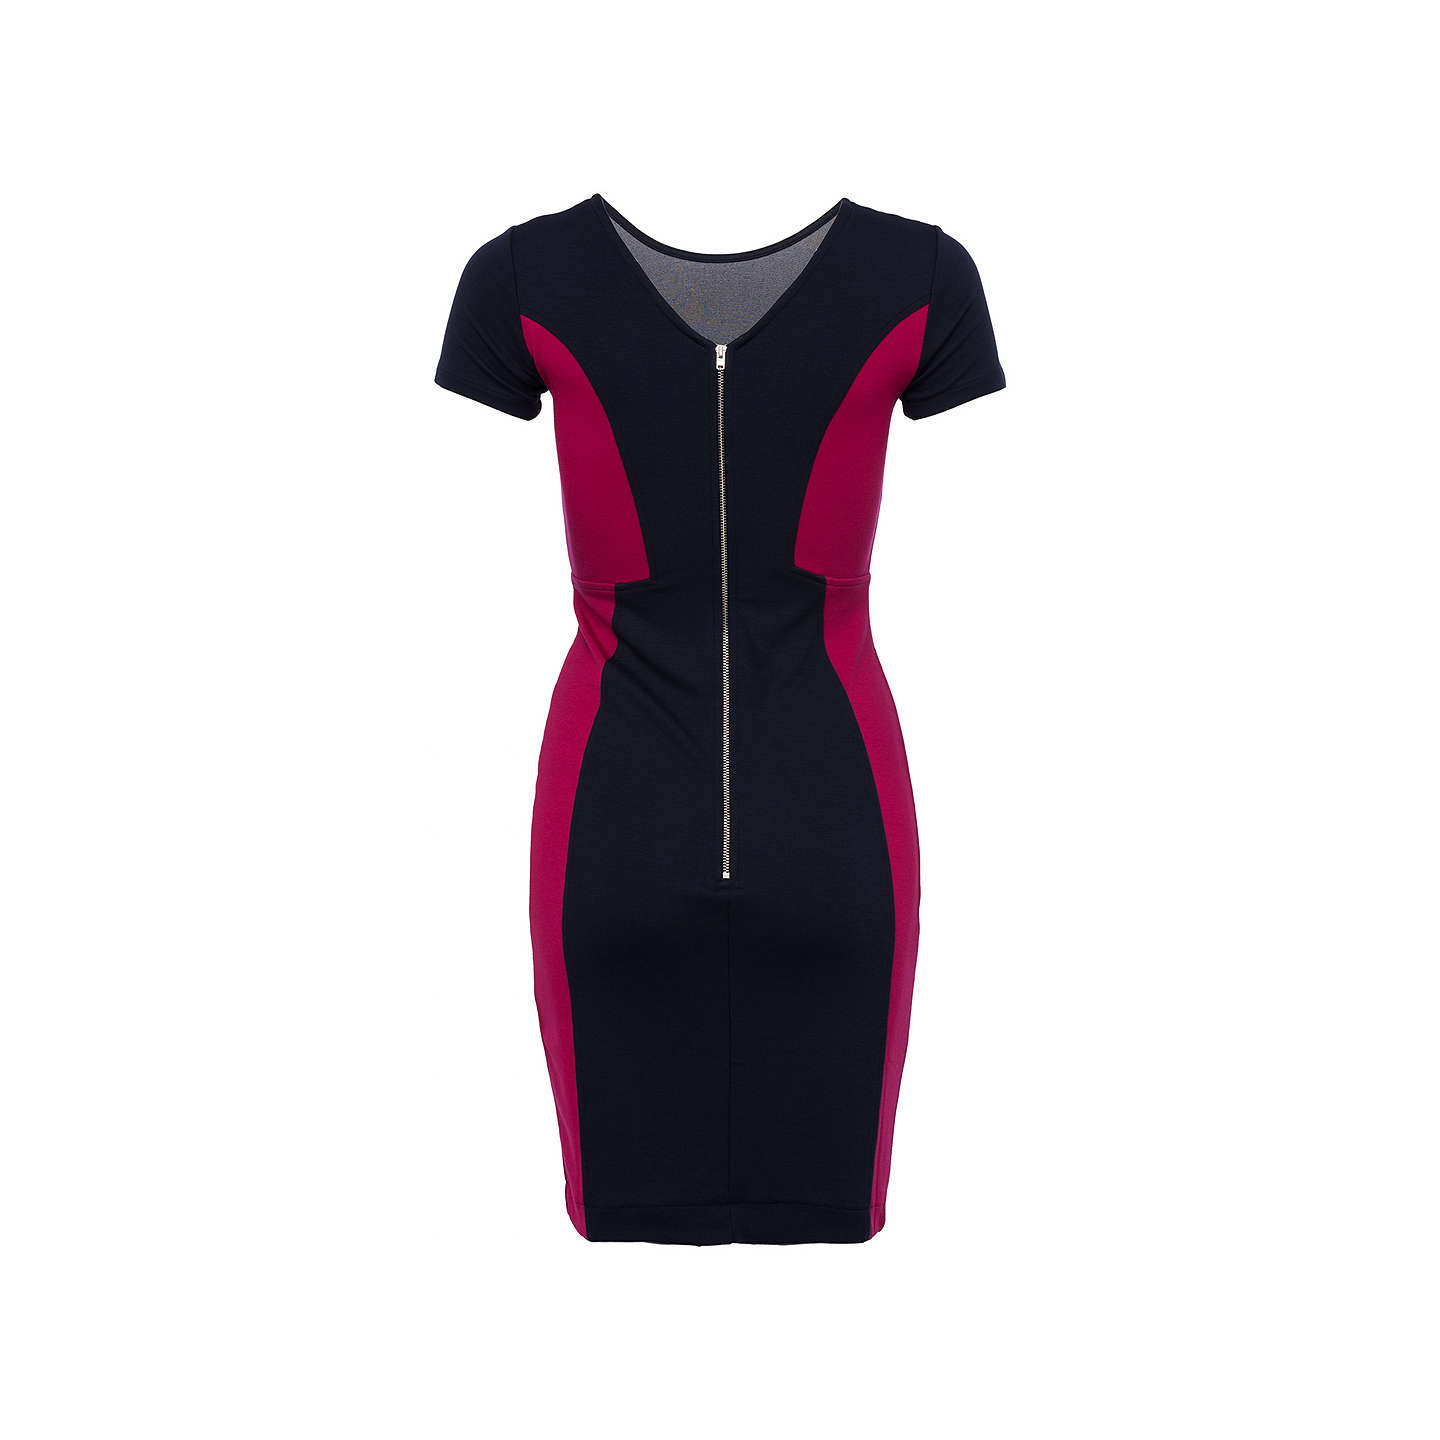 BuyFrench Connection Manhattan Colourblock Dress, Utility Blue/Summer Rouge, 12 Online at johnlewis.com